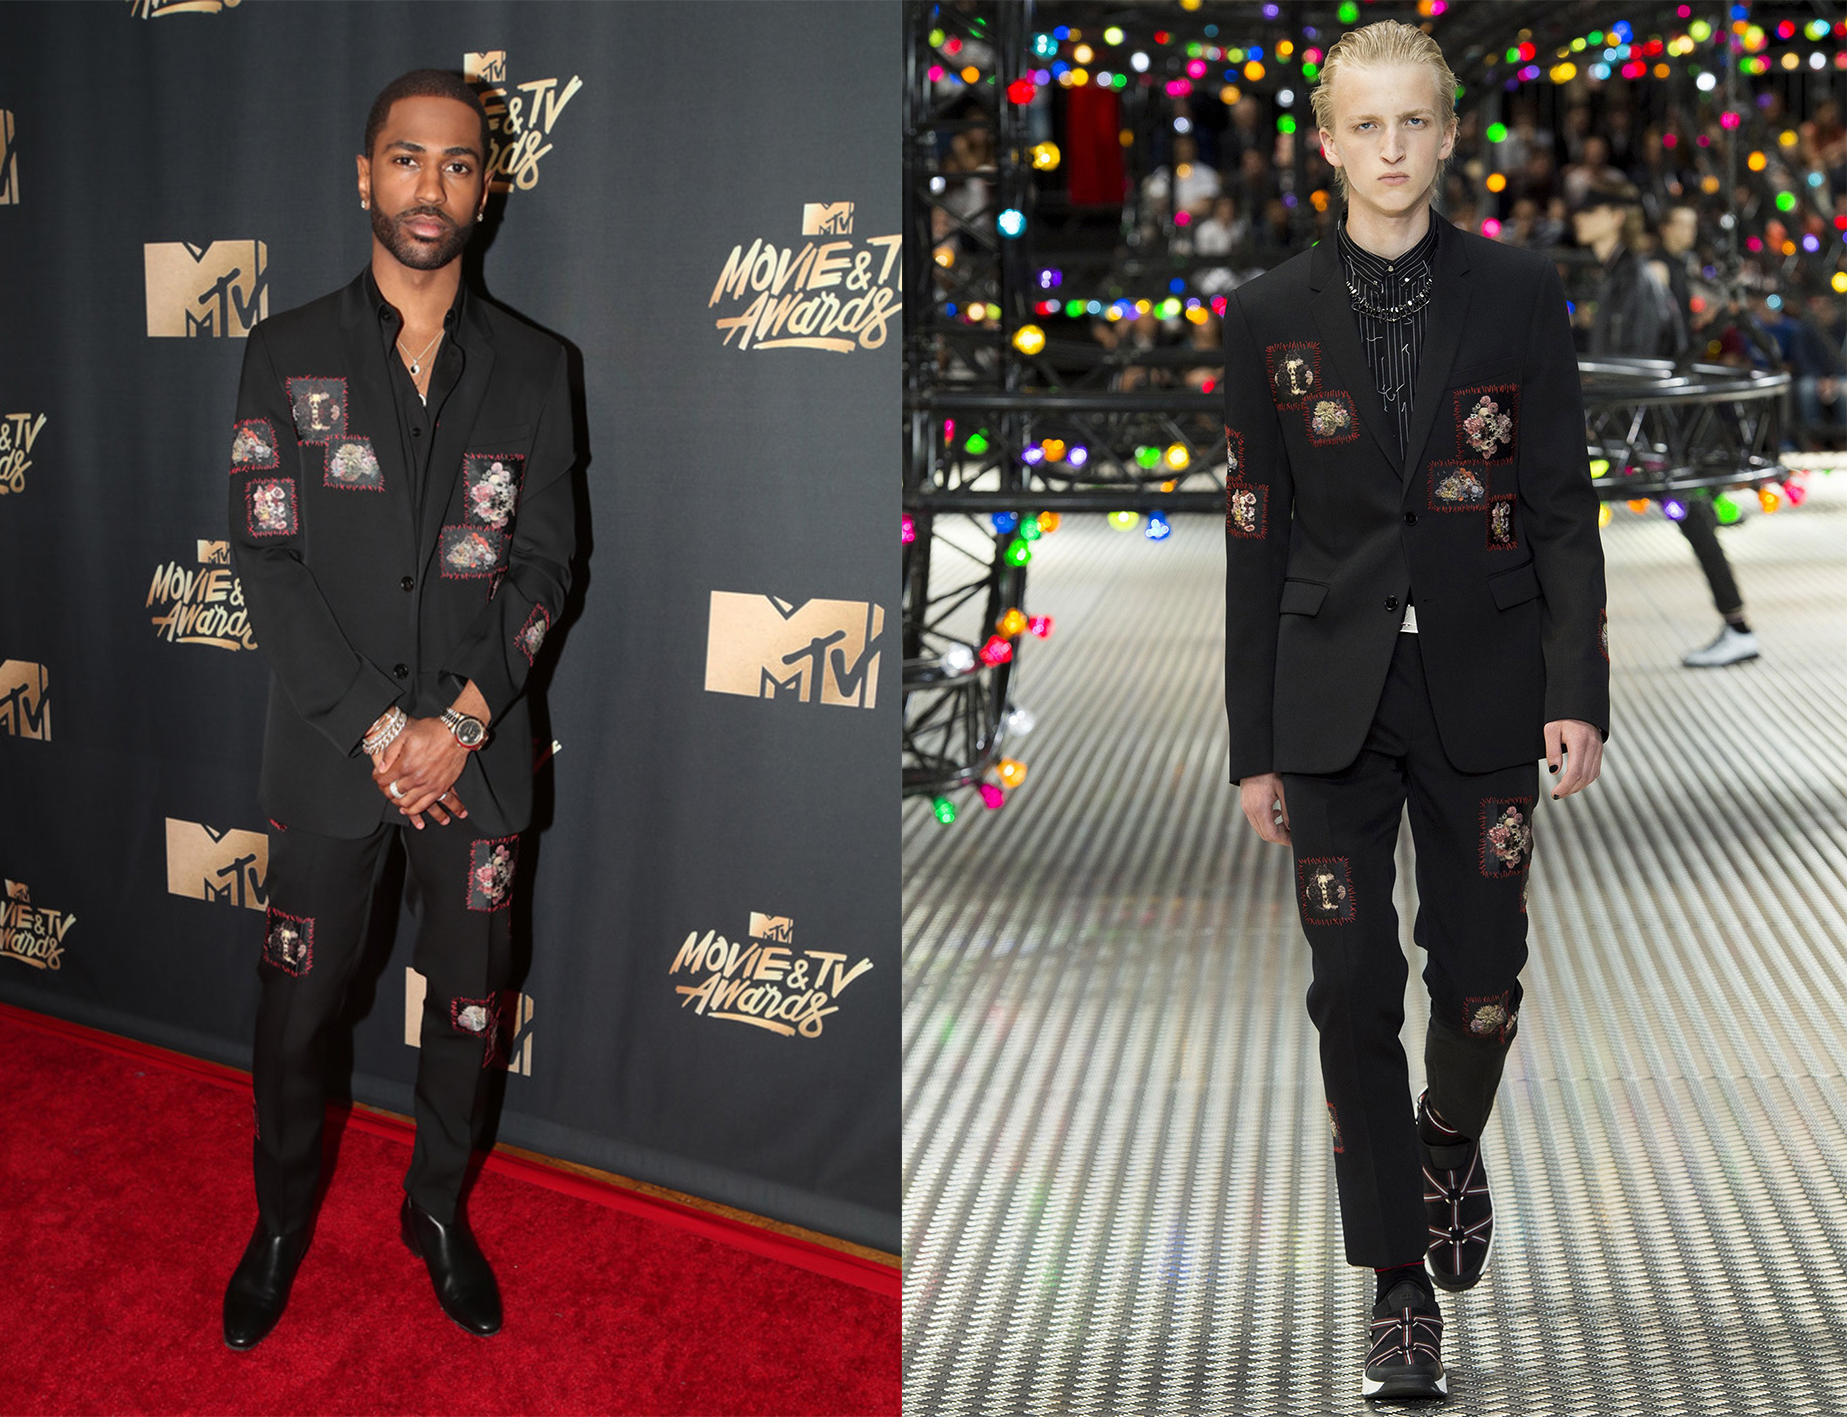 SPOTTED: Big Sean in Dior Homme at MTV Movie & TV Awards